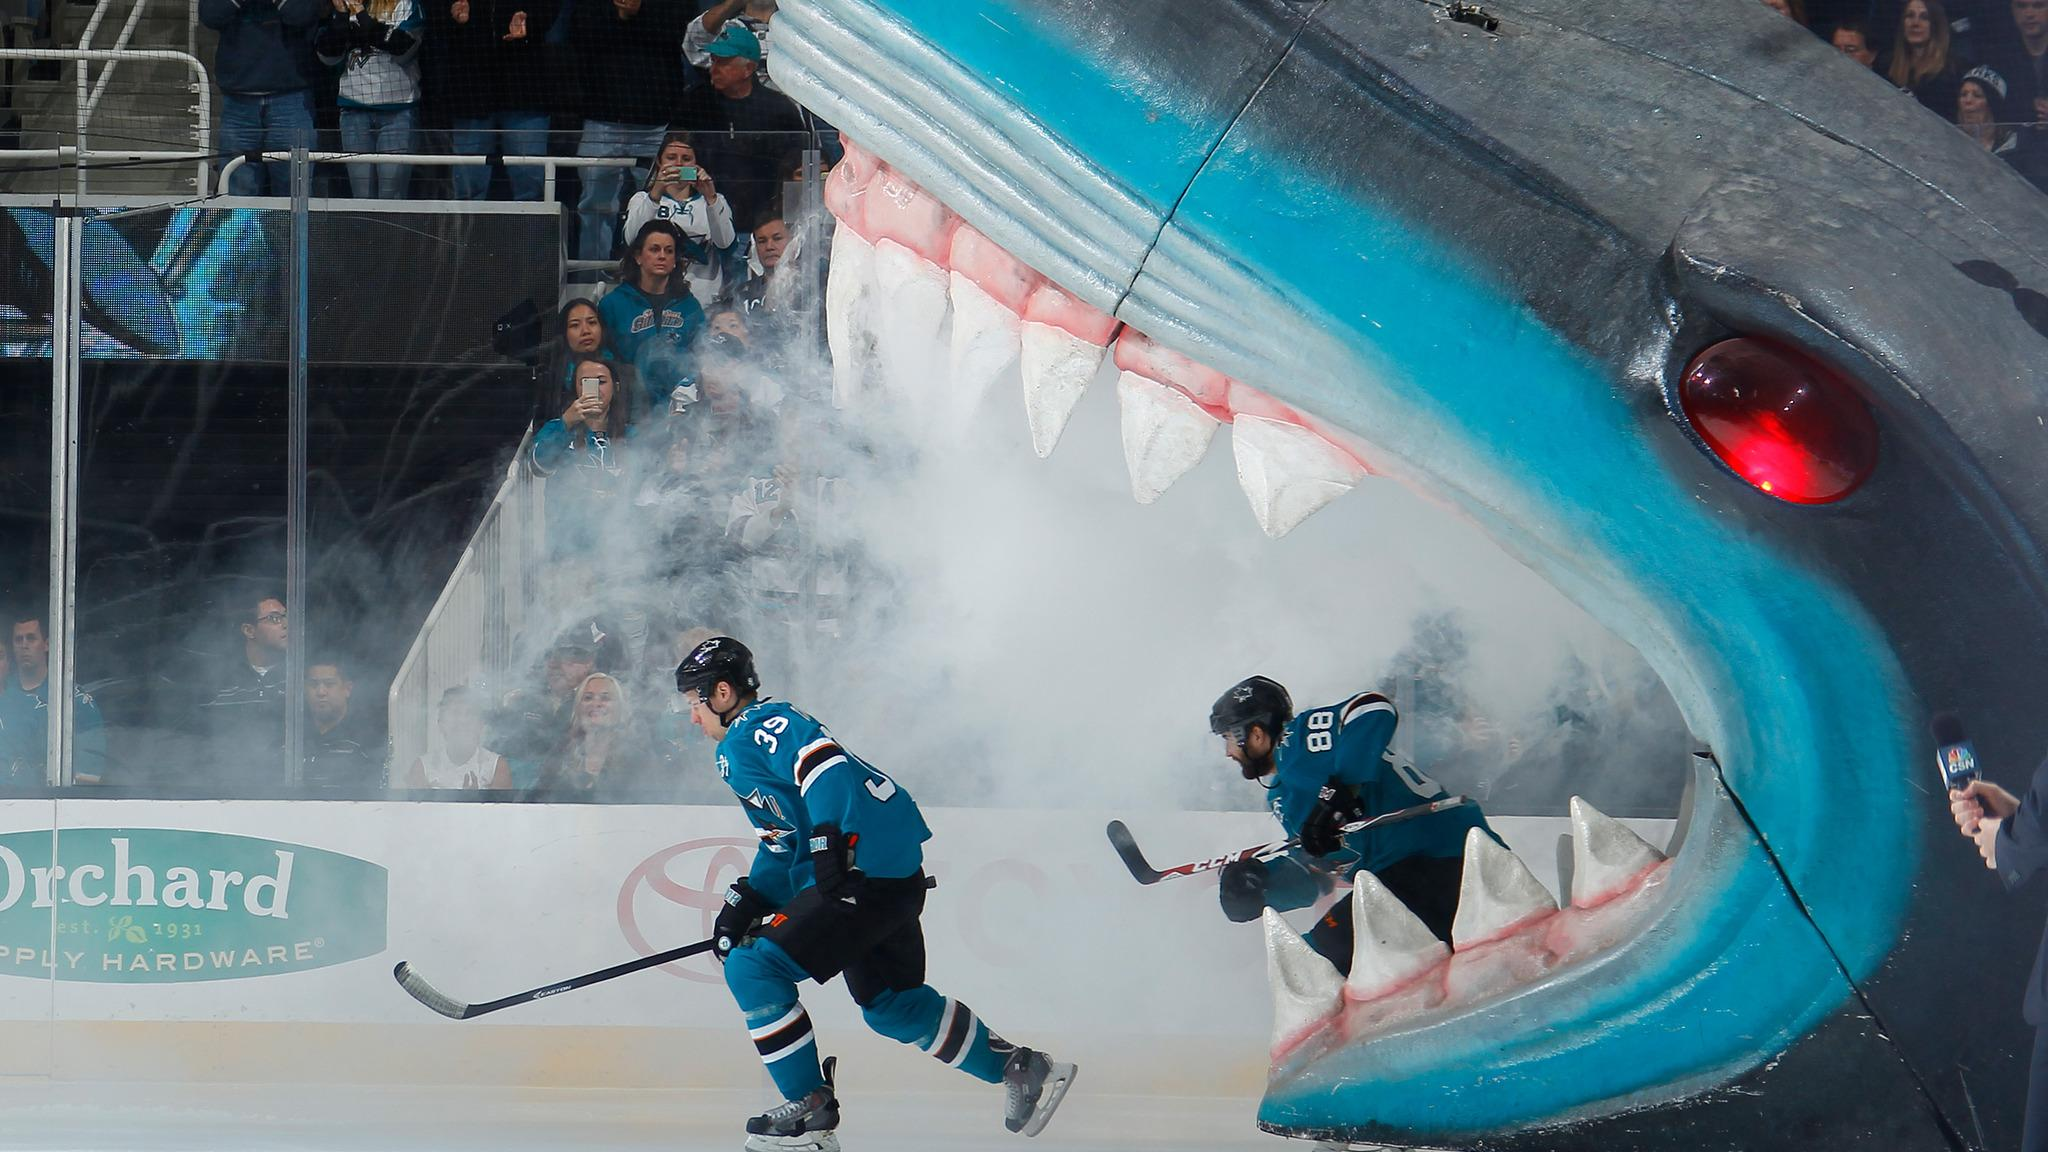 San Jose Sharks vs. St. Louis Blues - San Jose, CA 95113